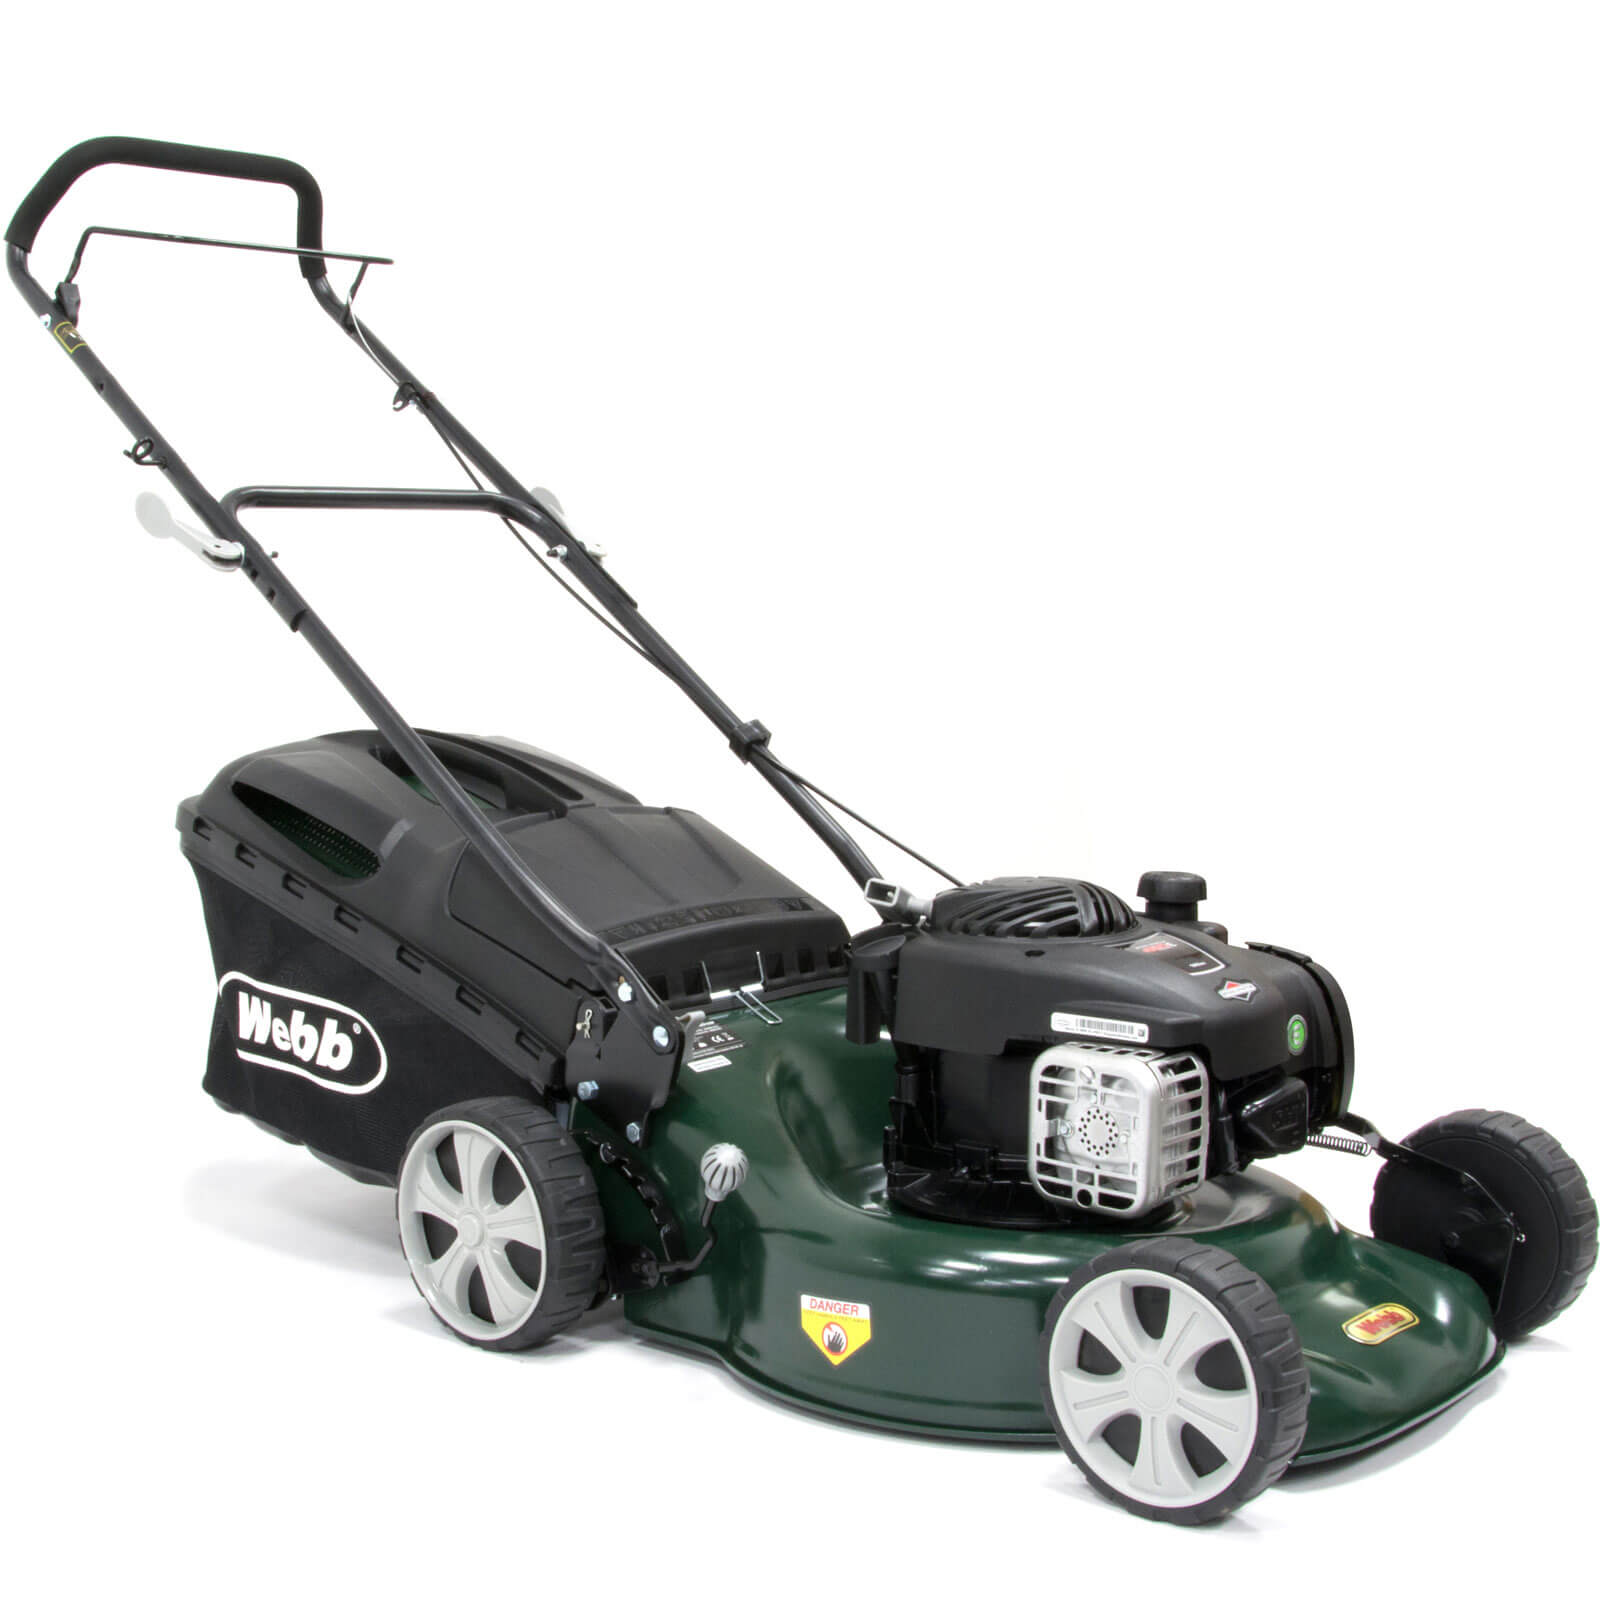 Image of Webb WER18SP Self Propelled Petrol 3 in 1 Rotary Lawnmower 460mm